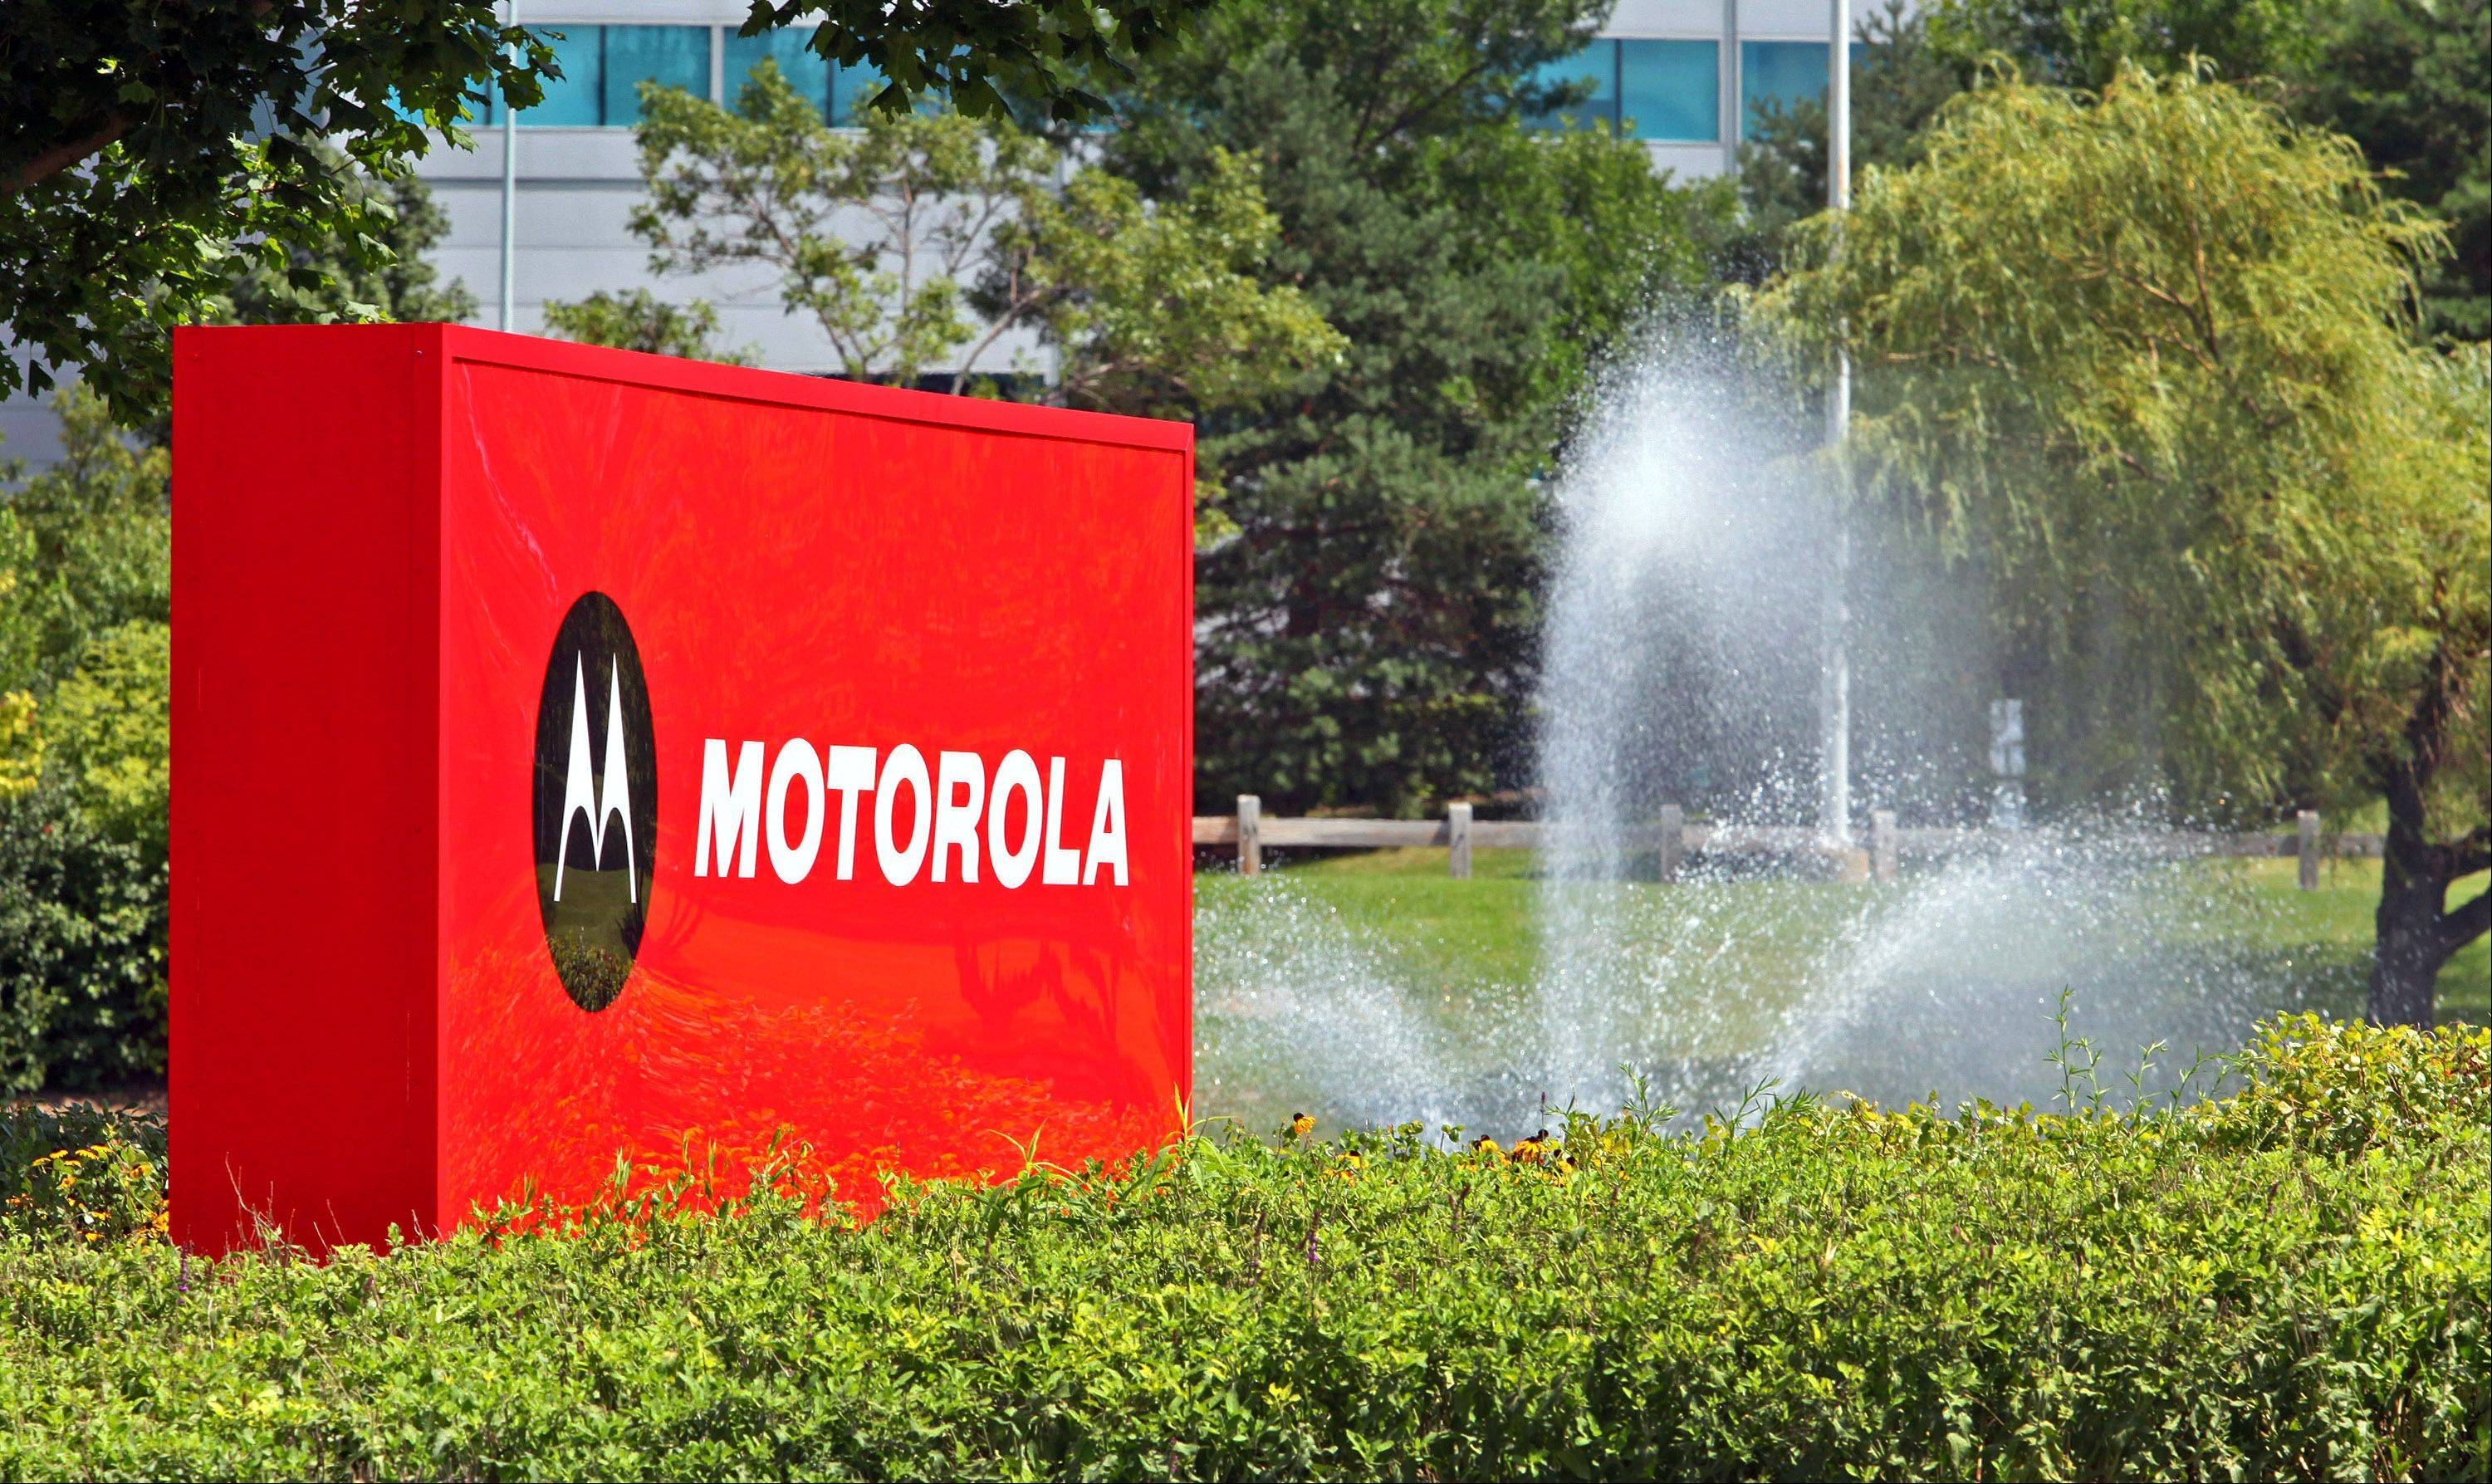 Libertyville-based Motorola Mobility Holdings Inc. has won a patent ruling allowing it to ban Microsoft Corp. from selling its Windows�7, Internet Explorer and Media Player software and Xbox gaming systems in Germany.